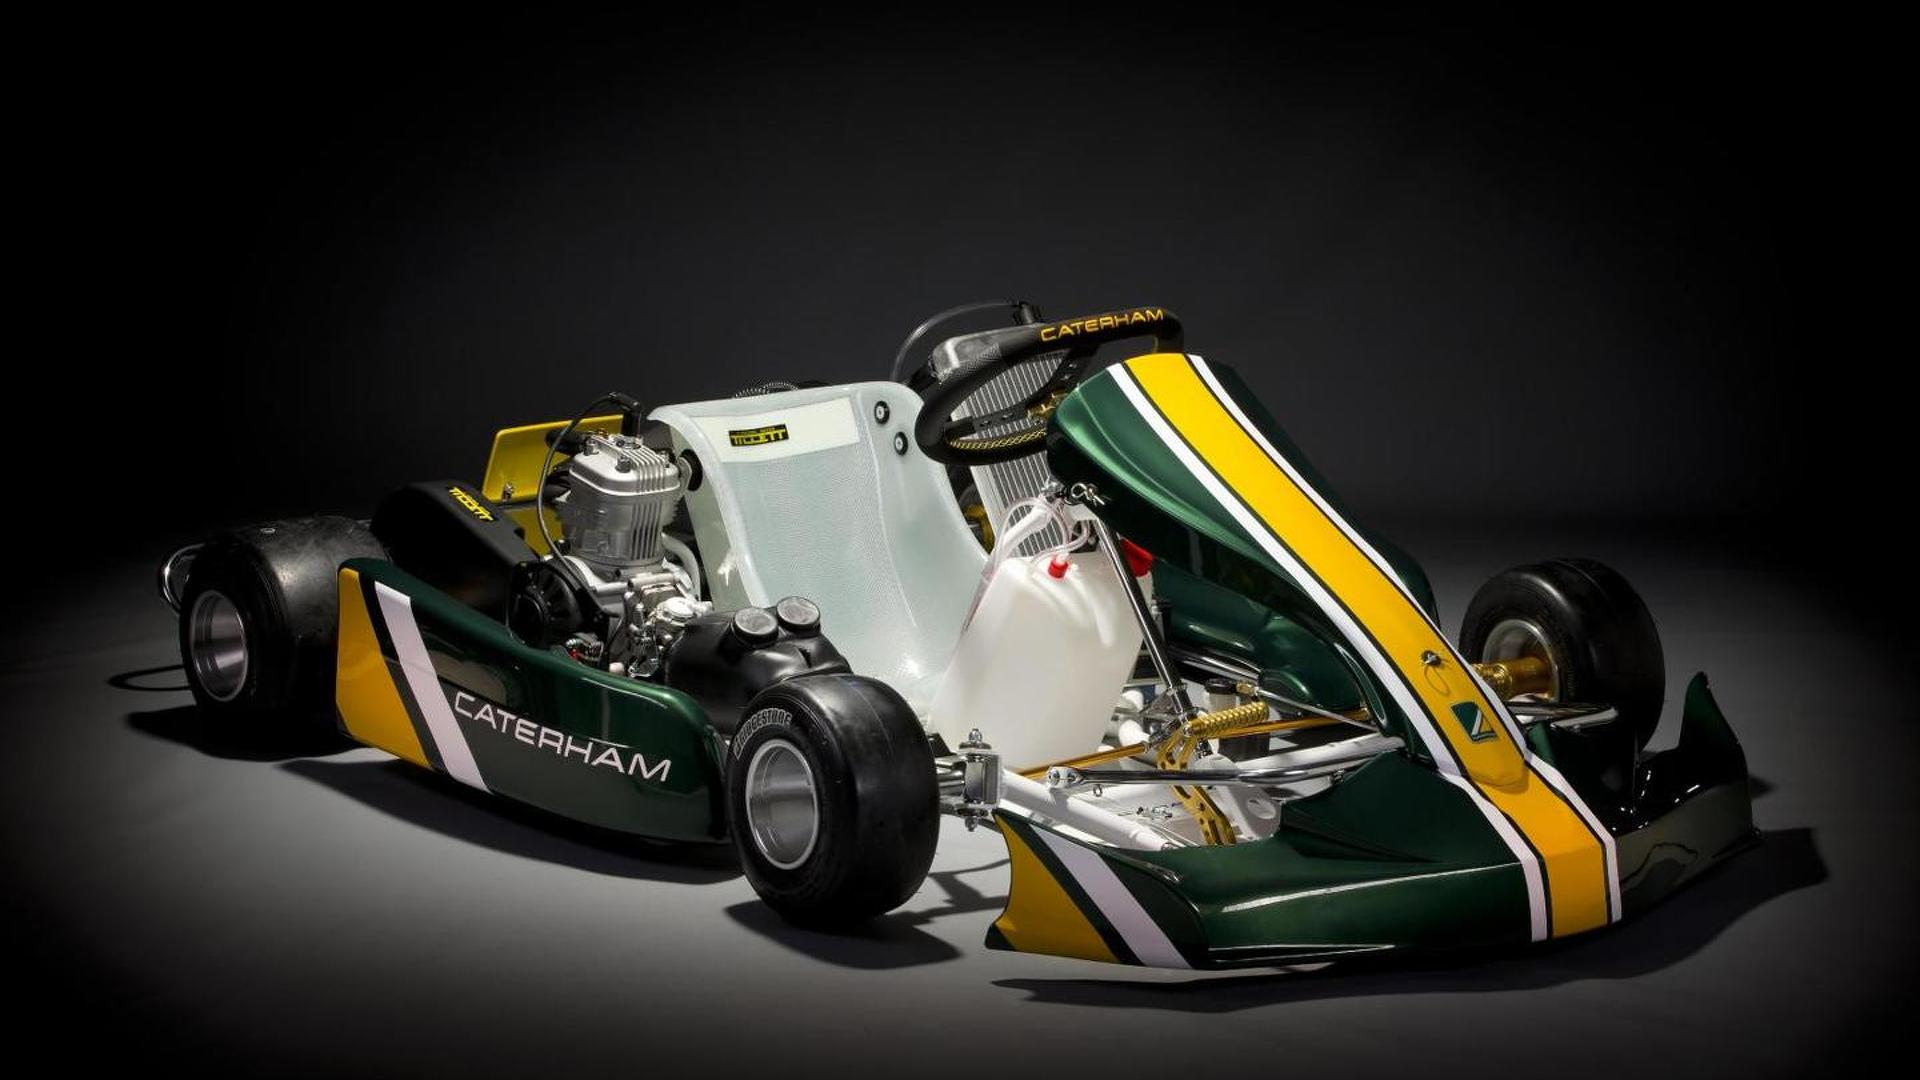 Caterham preparing affordable TAG 125 karting championship in UK